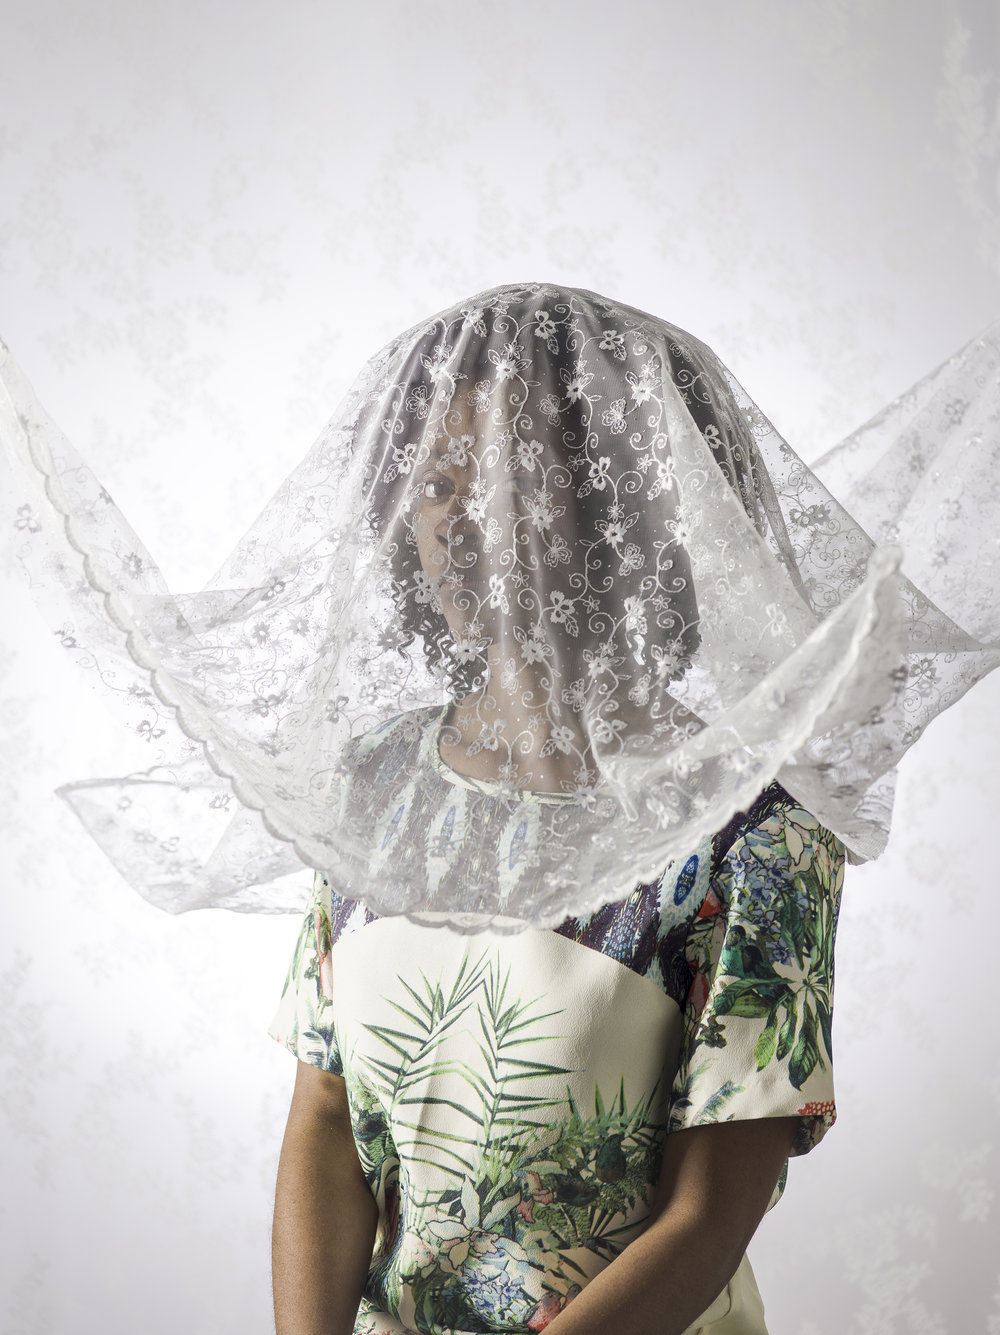 Haitian Women from Miami with Veil, 2015